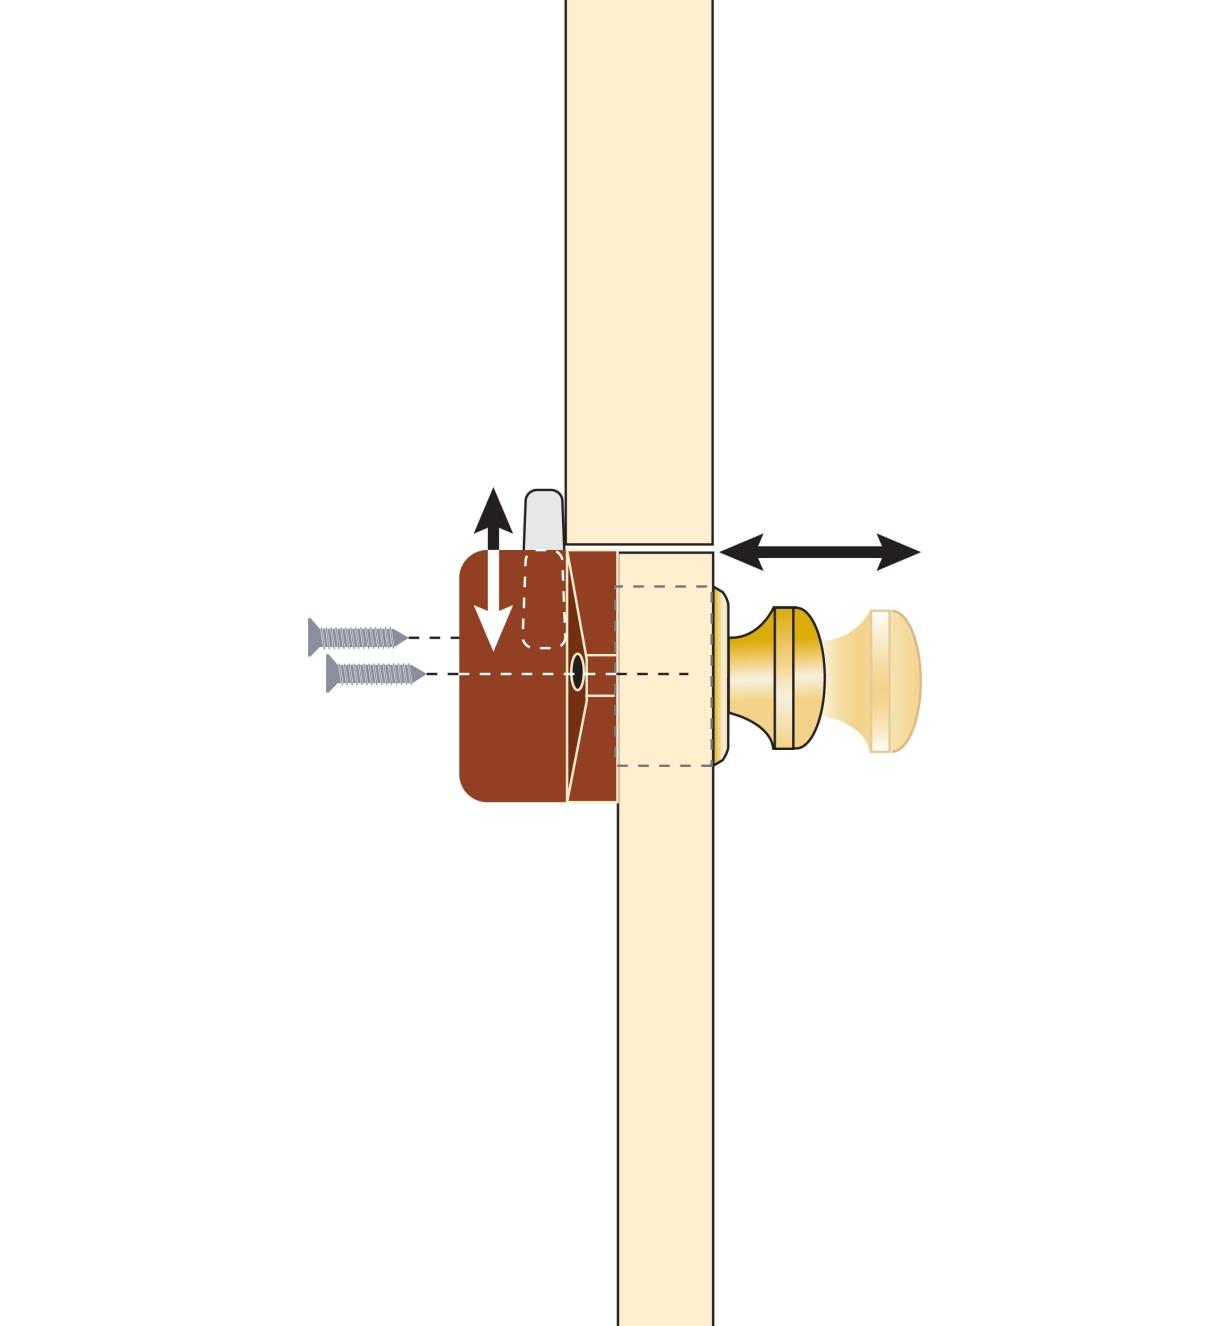 Cutaway illustration shows how to activate the installed latch by pushing the knob